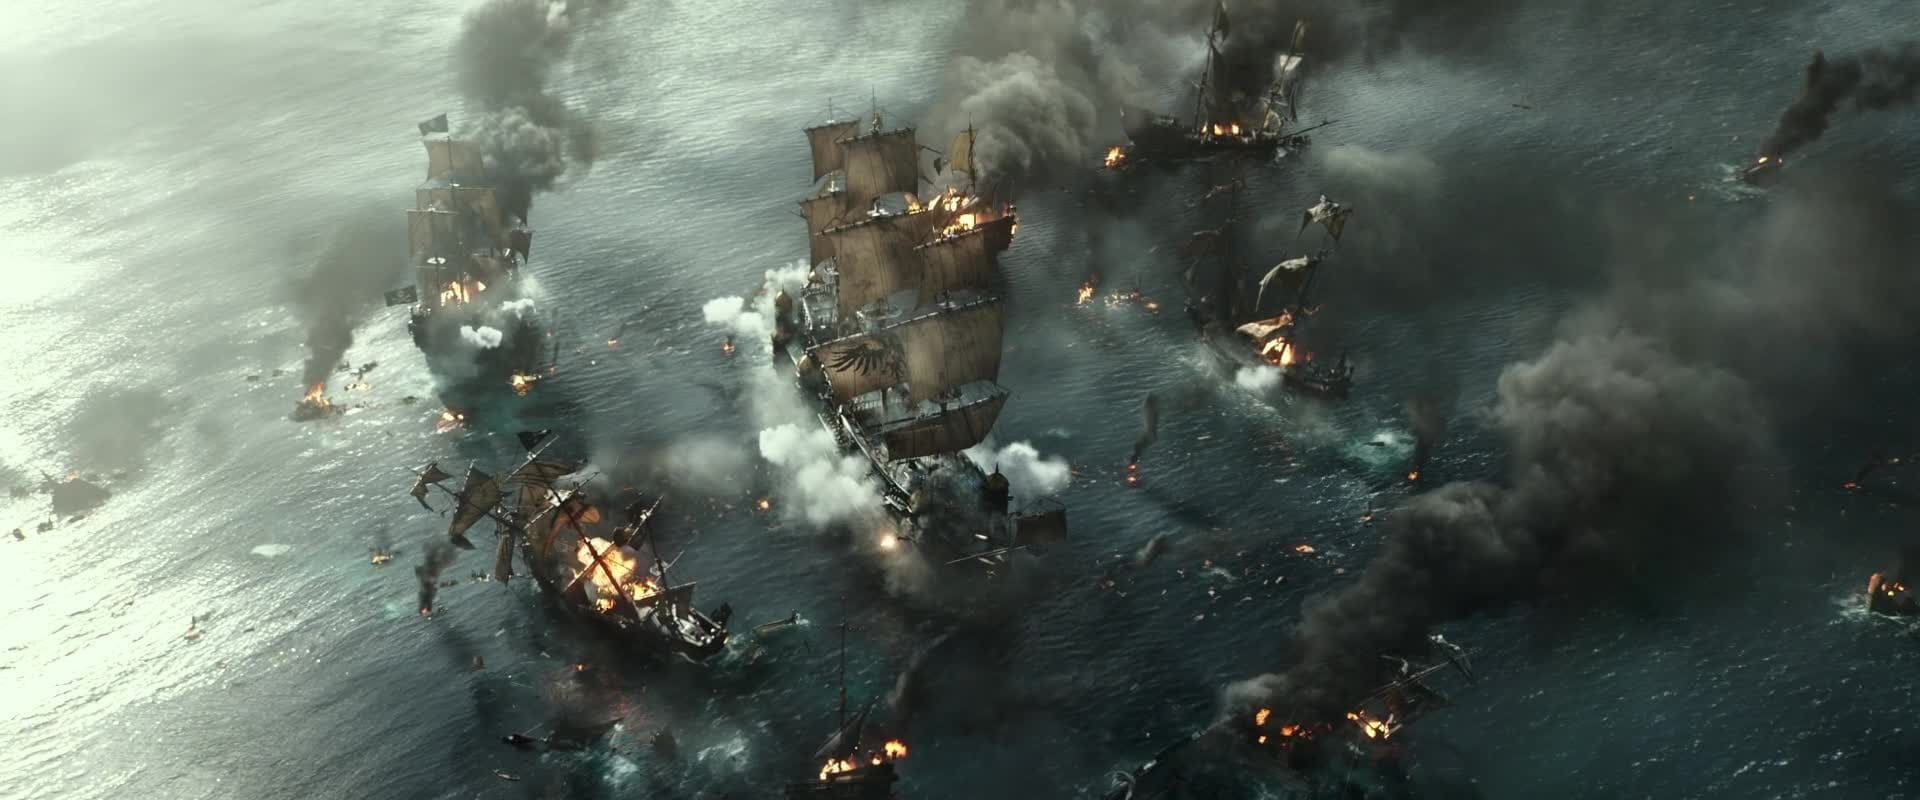 Pirates of the Caribbean: Salazar's Revenge - nieuwe clip